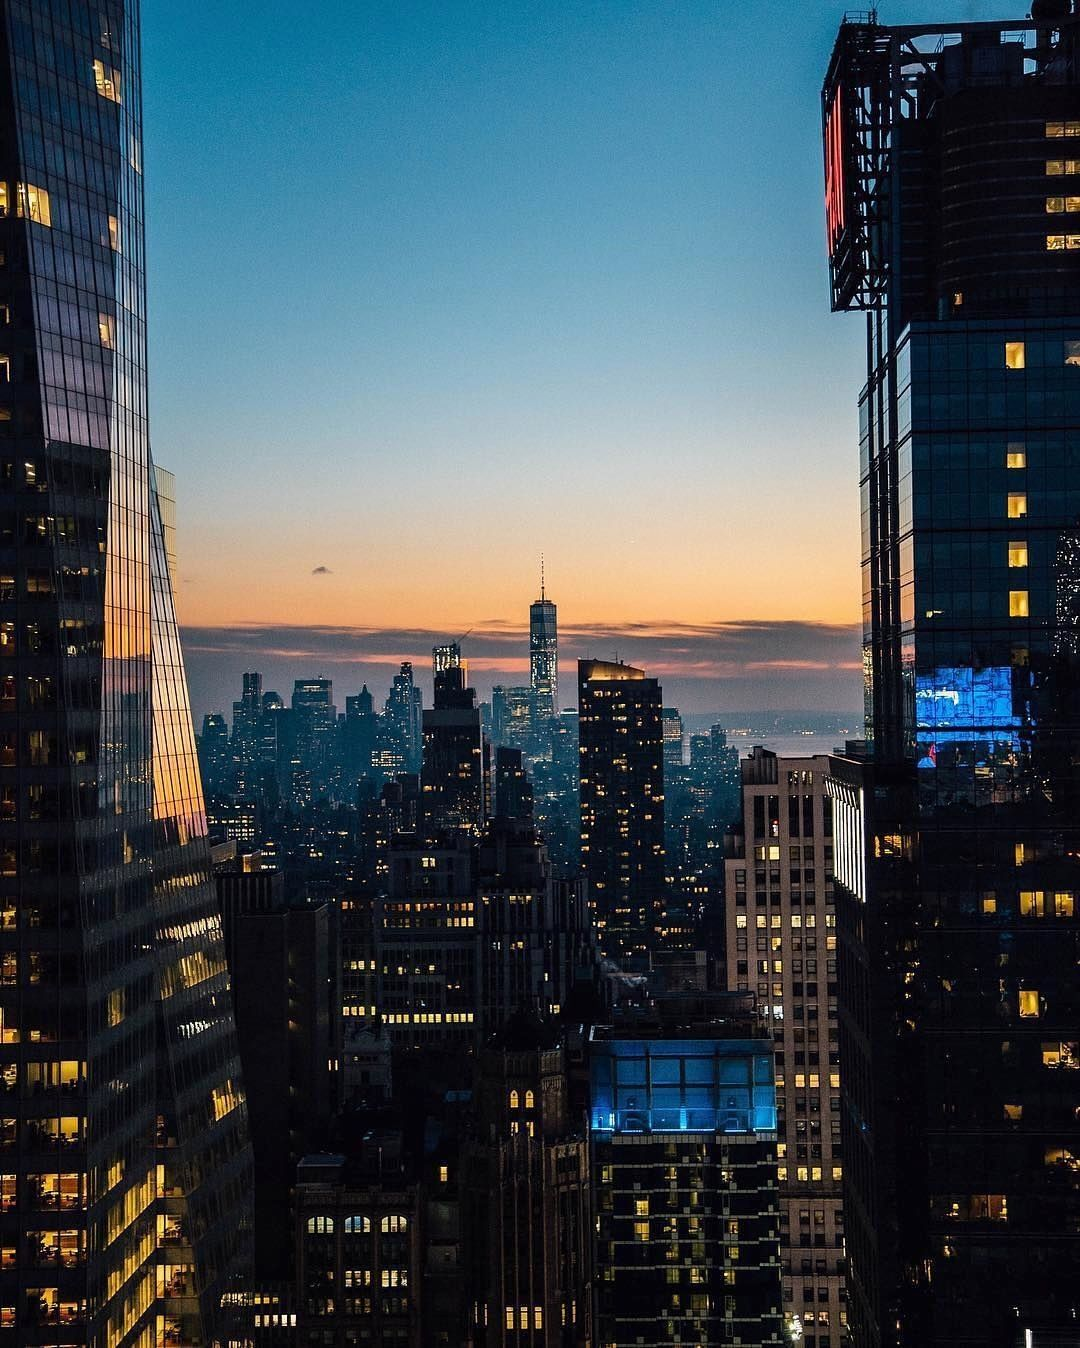 1 260 Moy Aresei 9 Sxolia I New York Nyobsession Sto Instagram Posted By Icapture Nyc If City Landscape City Wallpaper City Aesthetic